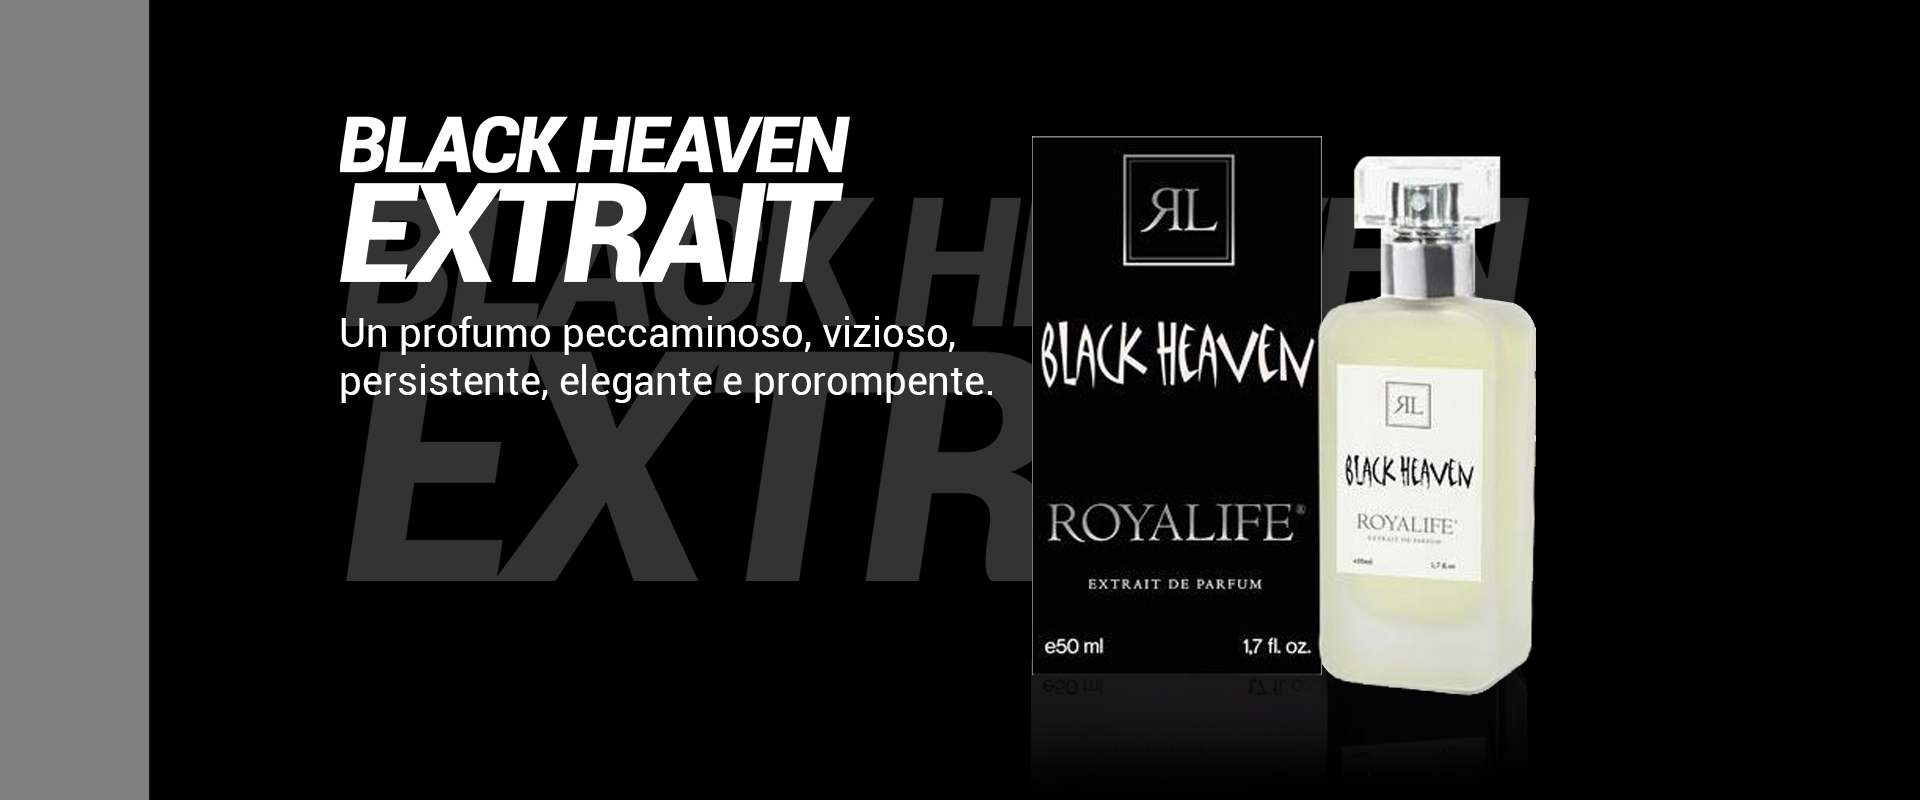 Slider-Black-Heaven-Extrait-2-